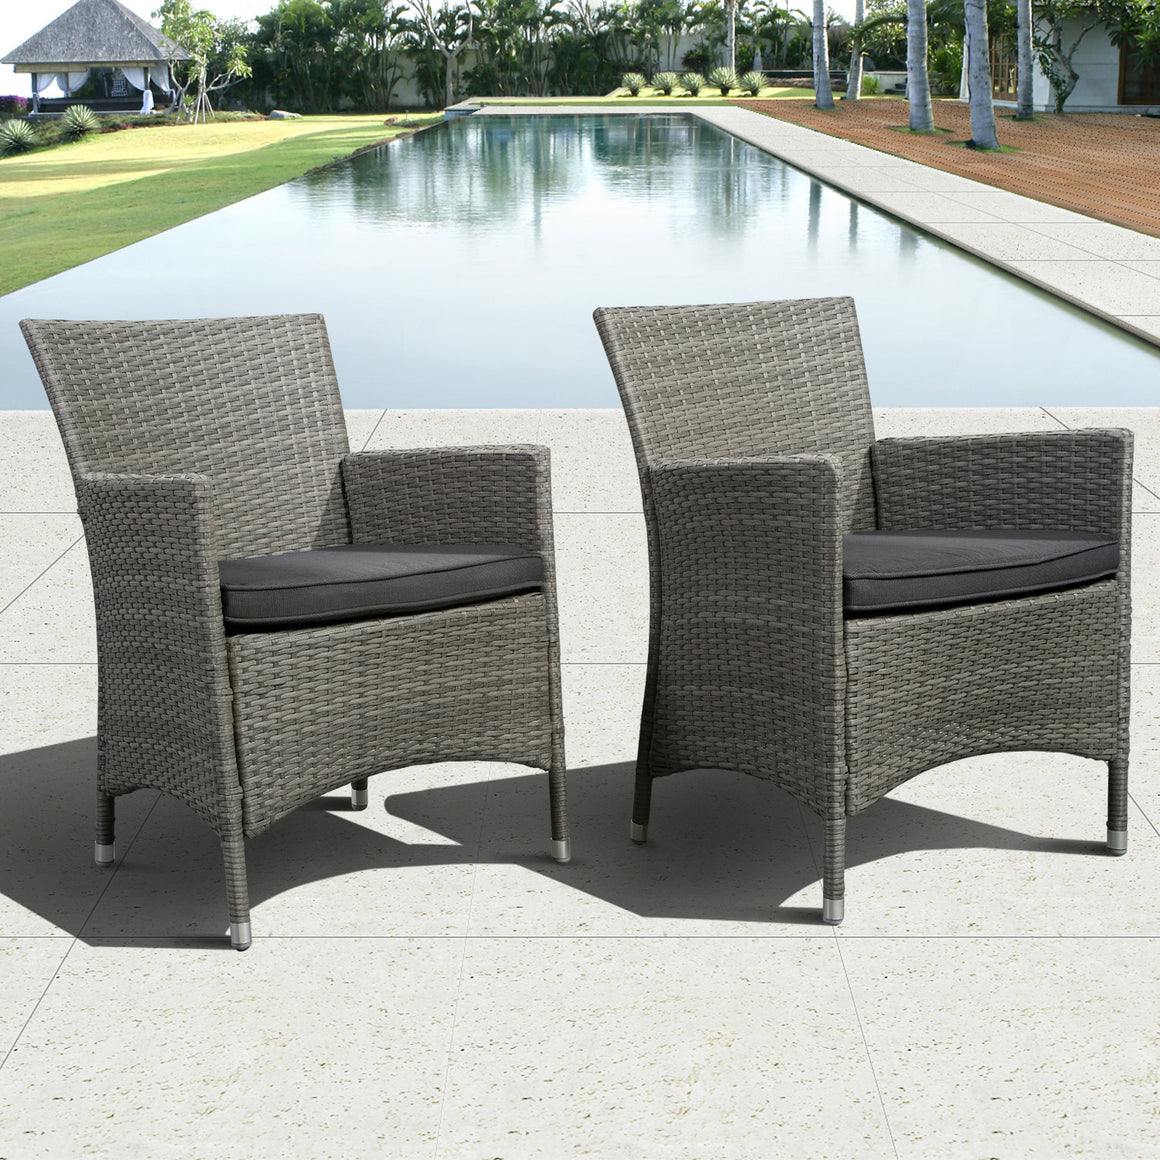 Grand New Liberty Deluxe Square 9 Piece Patio Dining Set Grey with Grey Cushions , International Home Miami- grayburd